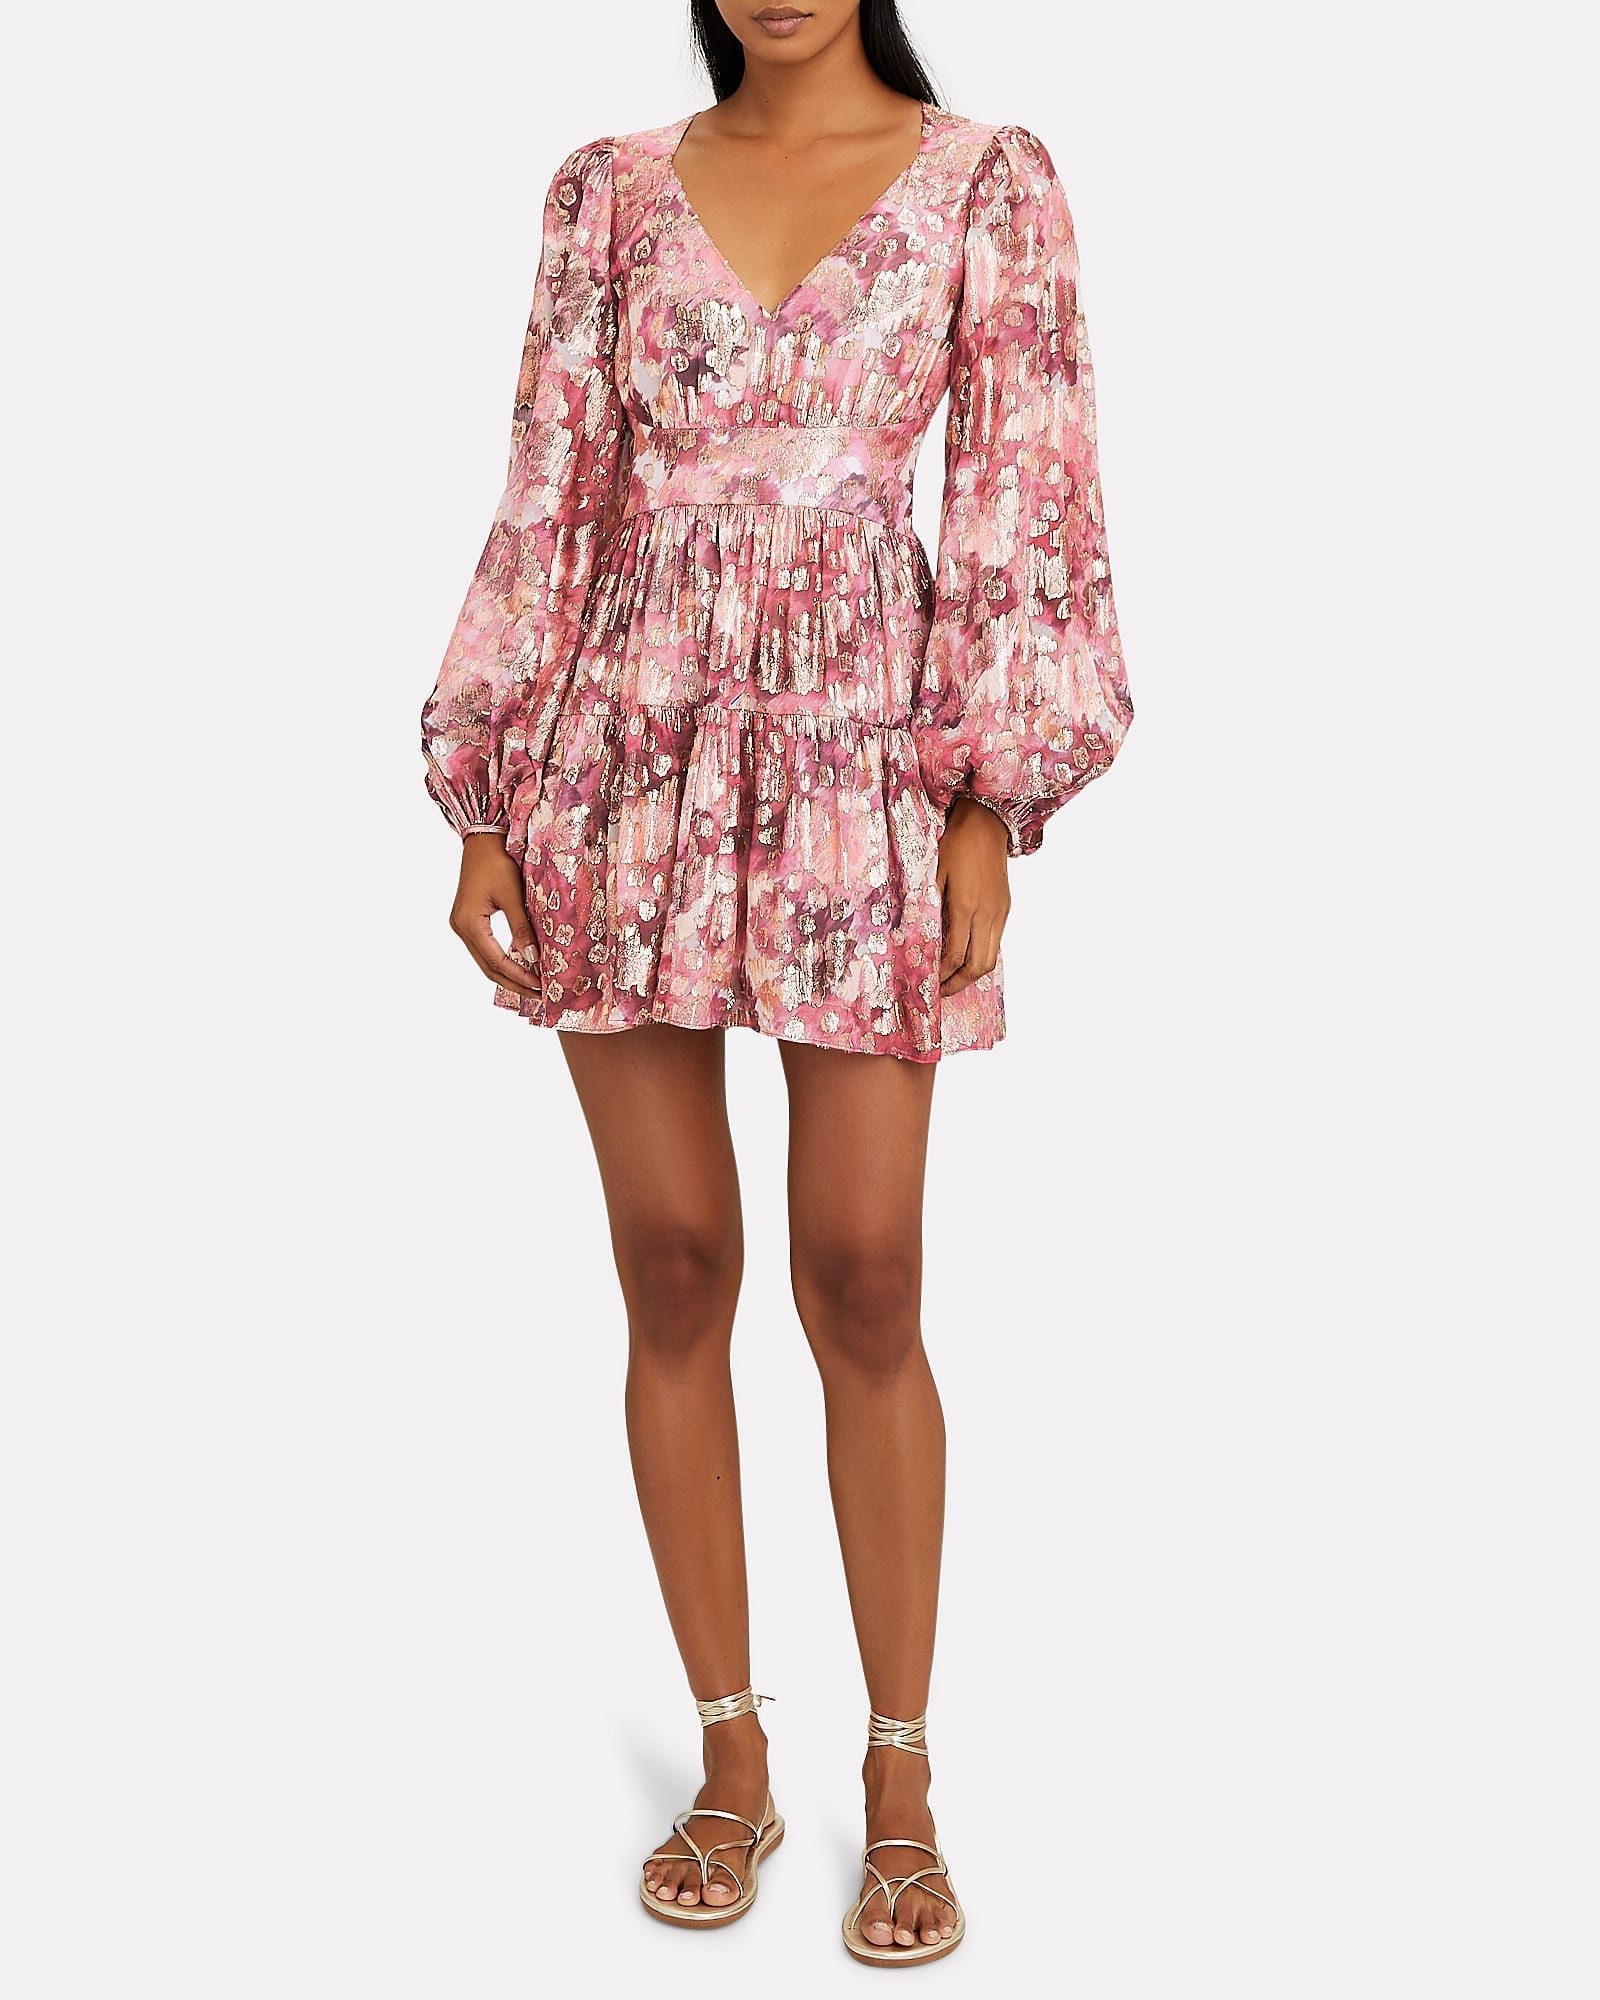 LOVESHACKFANCY Willis Floral Devoré Mini Dress